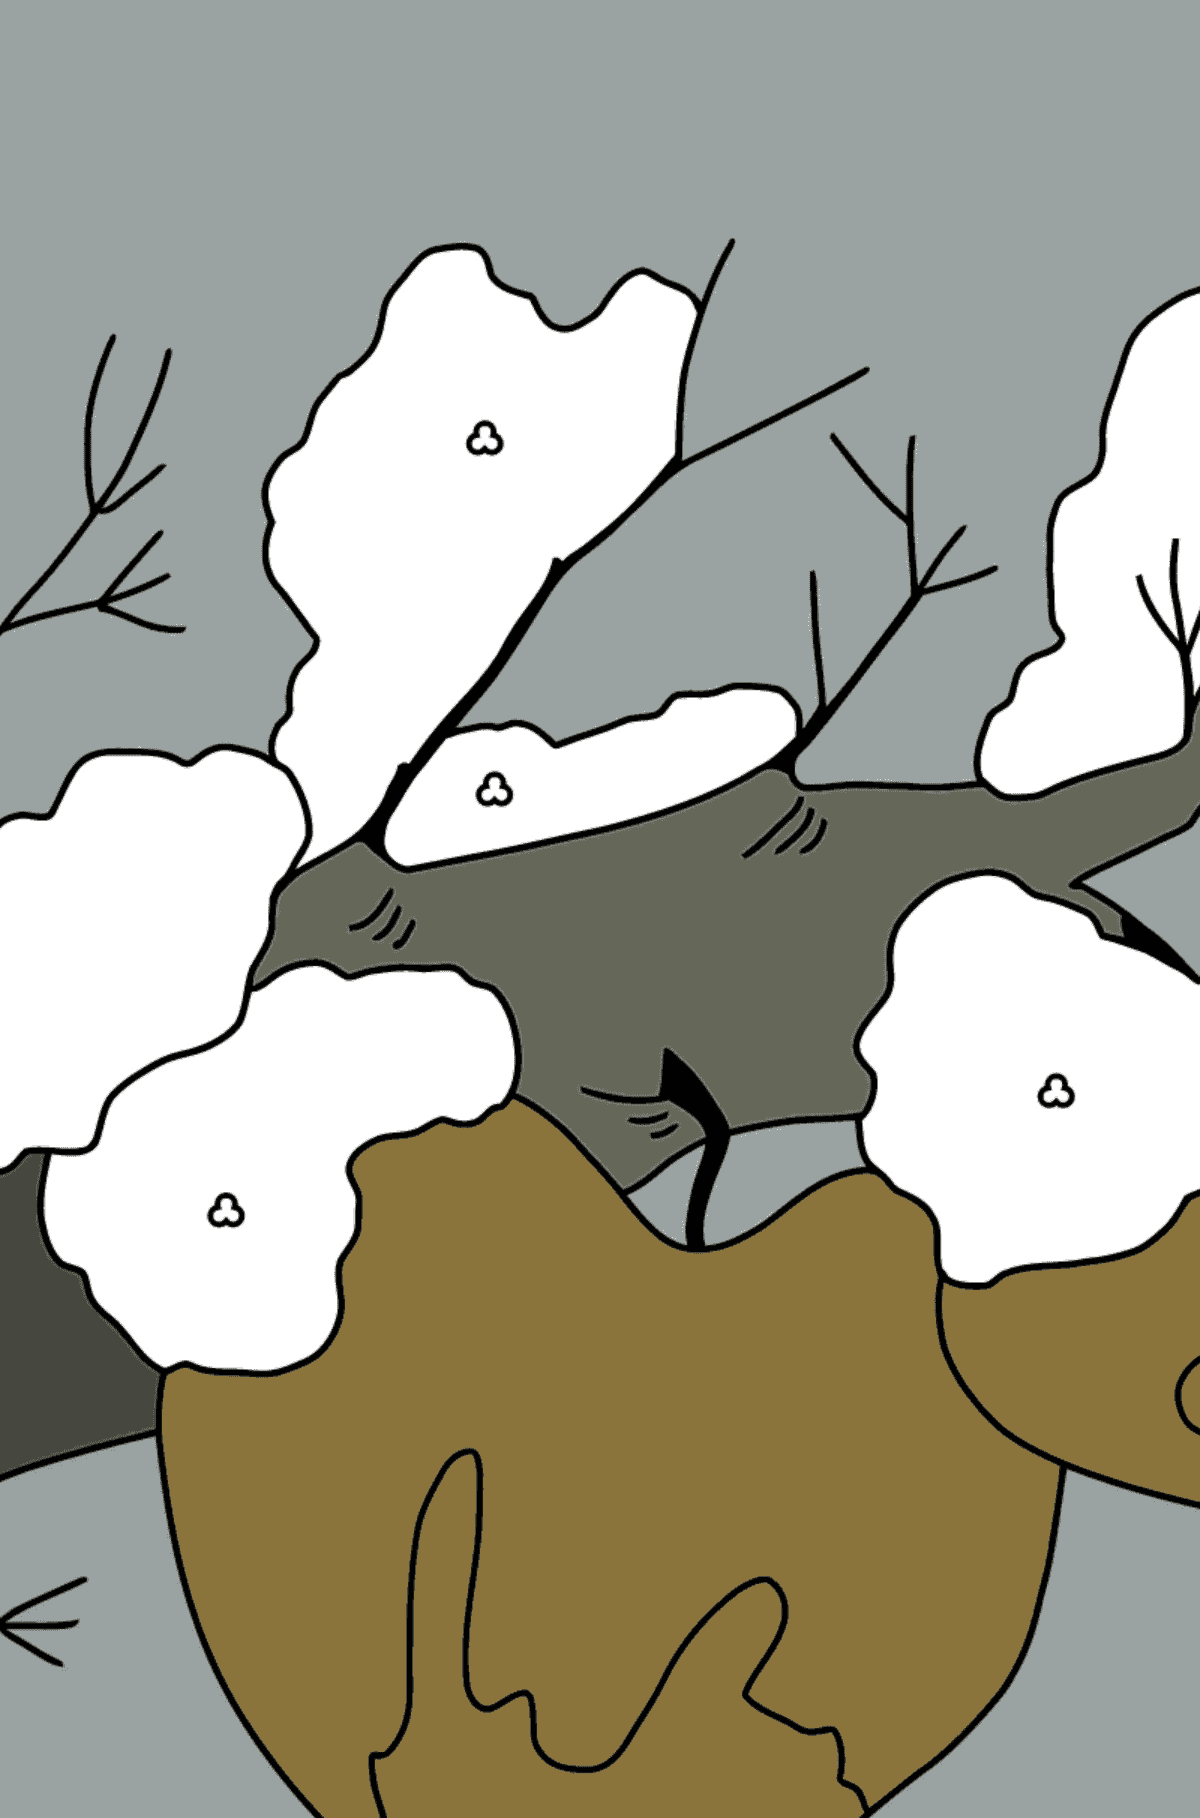 Winter Coloring Page - Apples and the First Snow for Children  - Color by Geometric Shapes